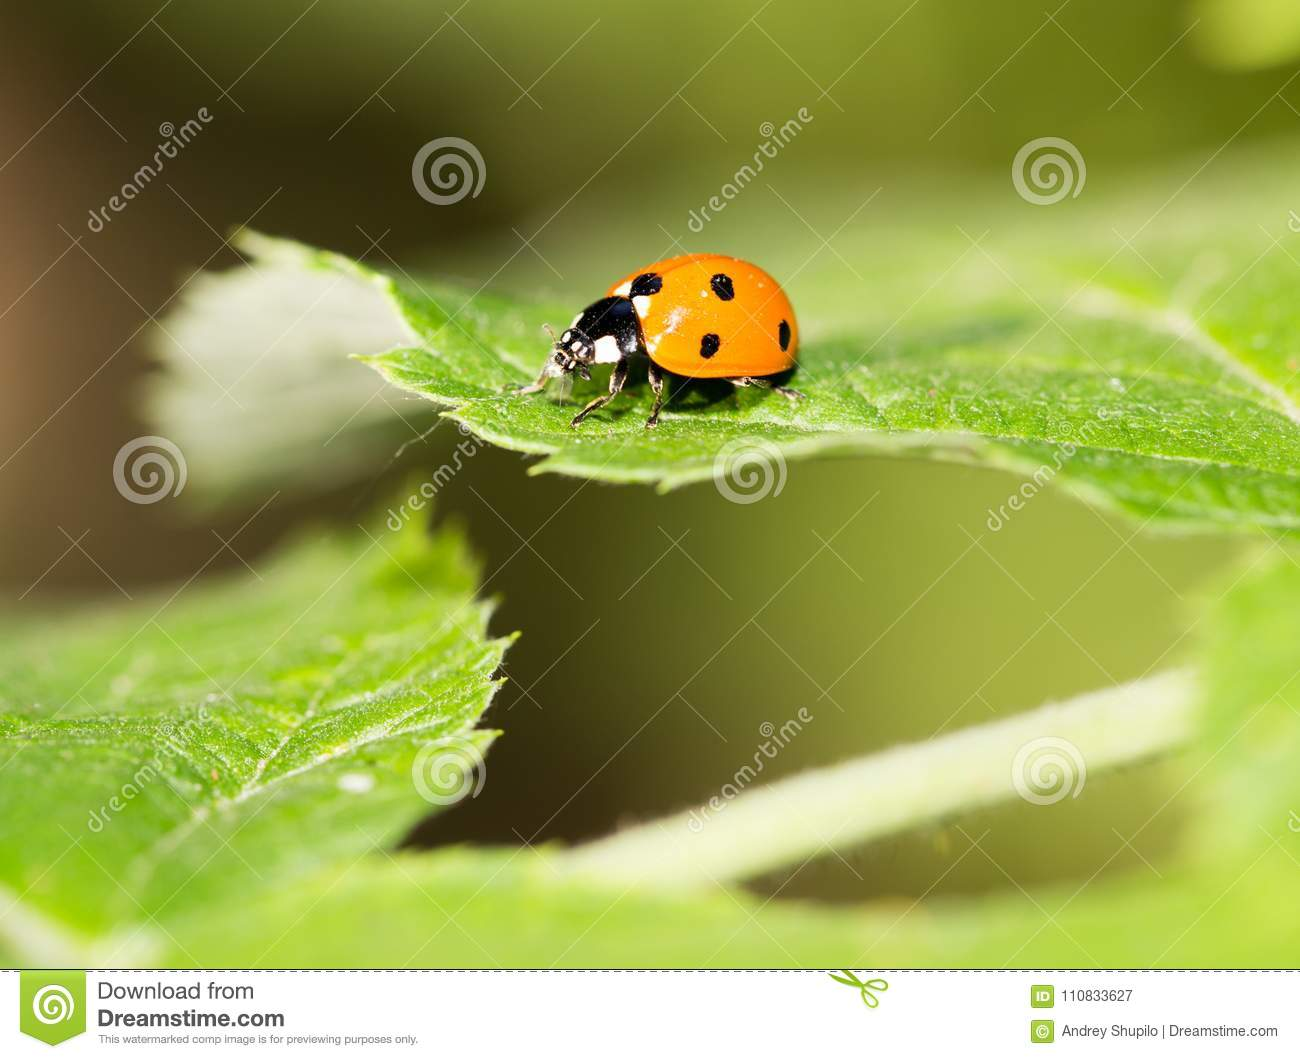 Ladybug on a plant in the nature. macro